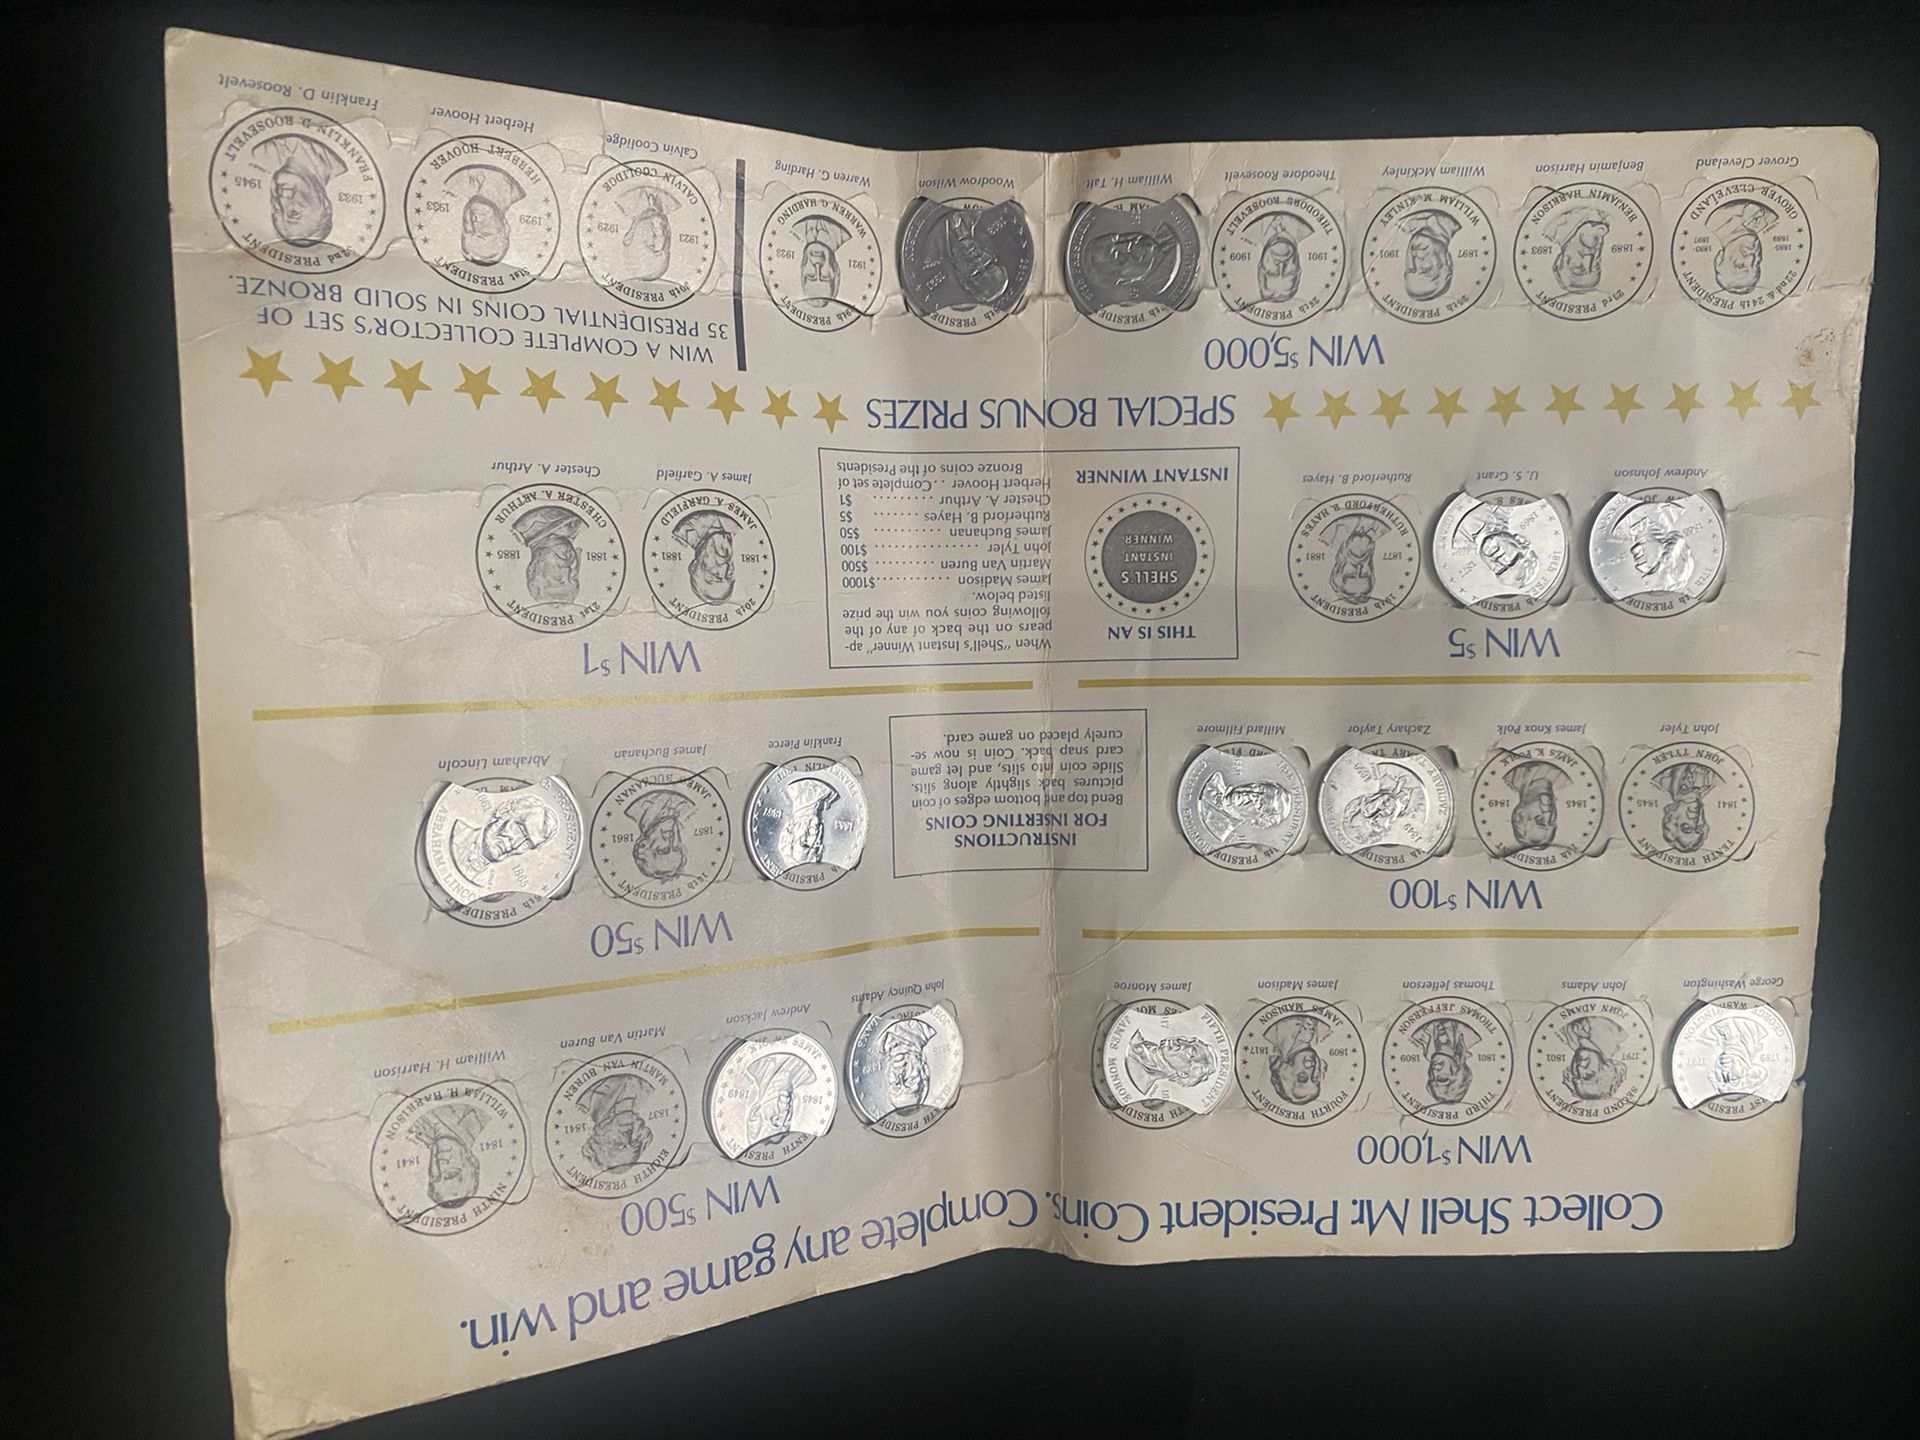 Shell Gas Station 1968 Presidential Coins Lot Of 12